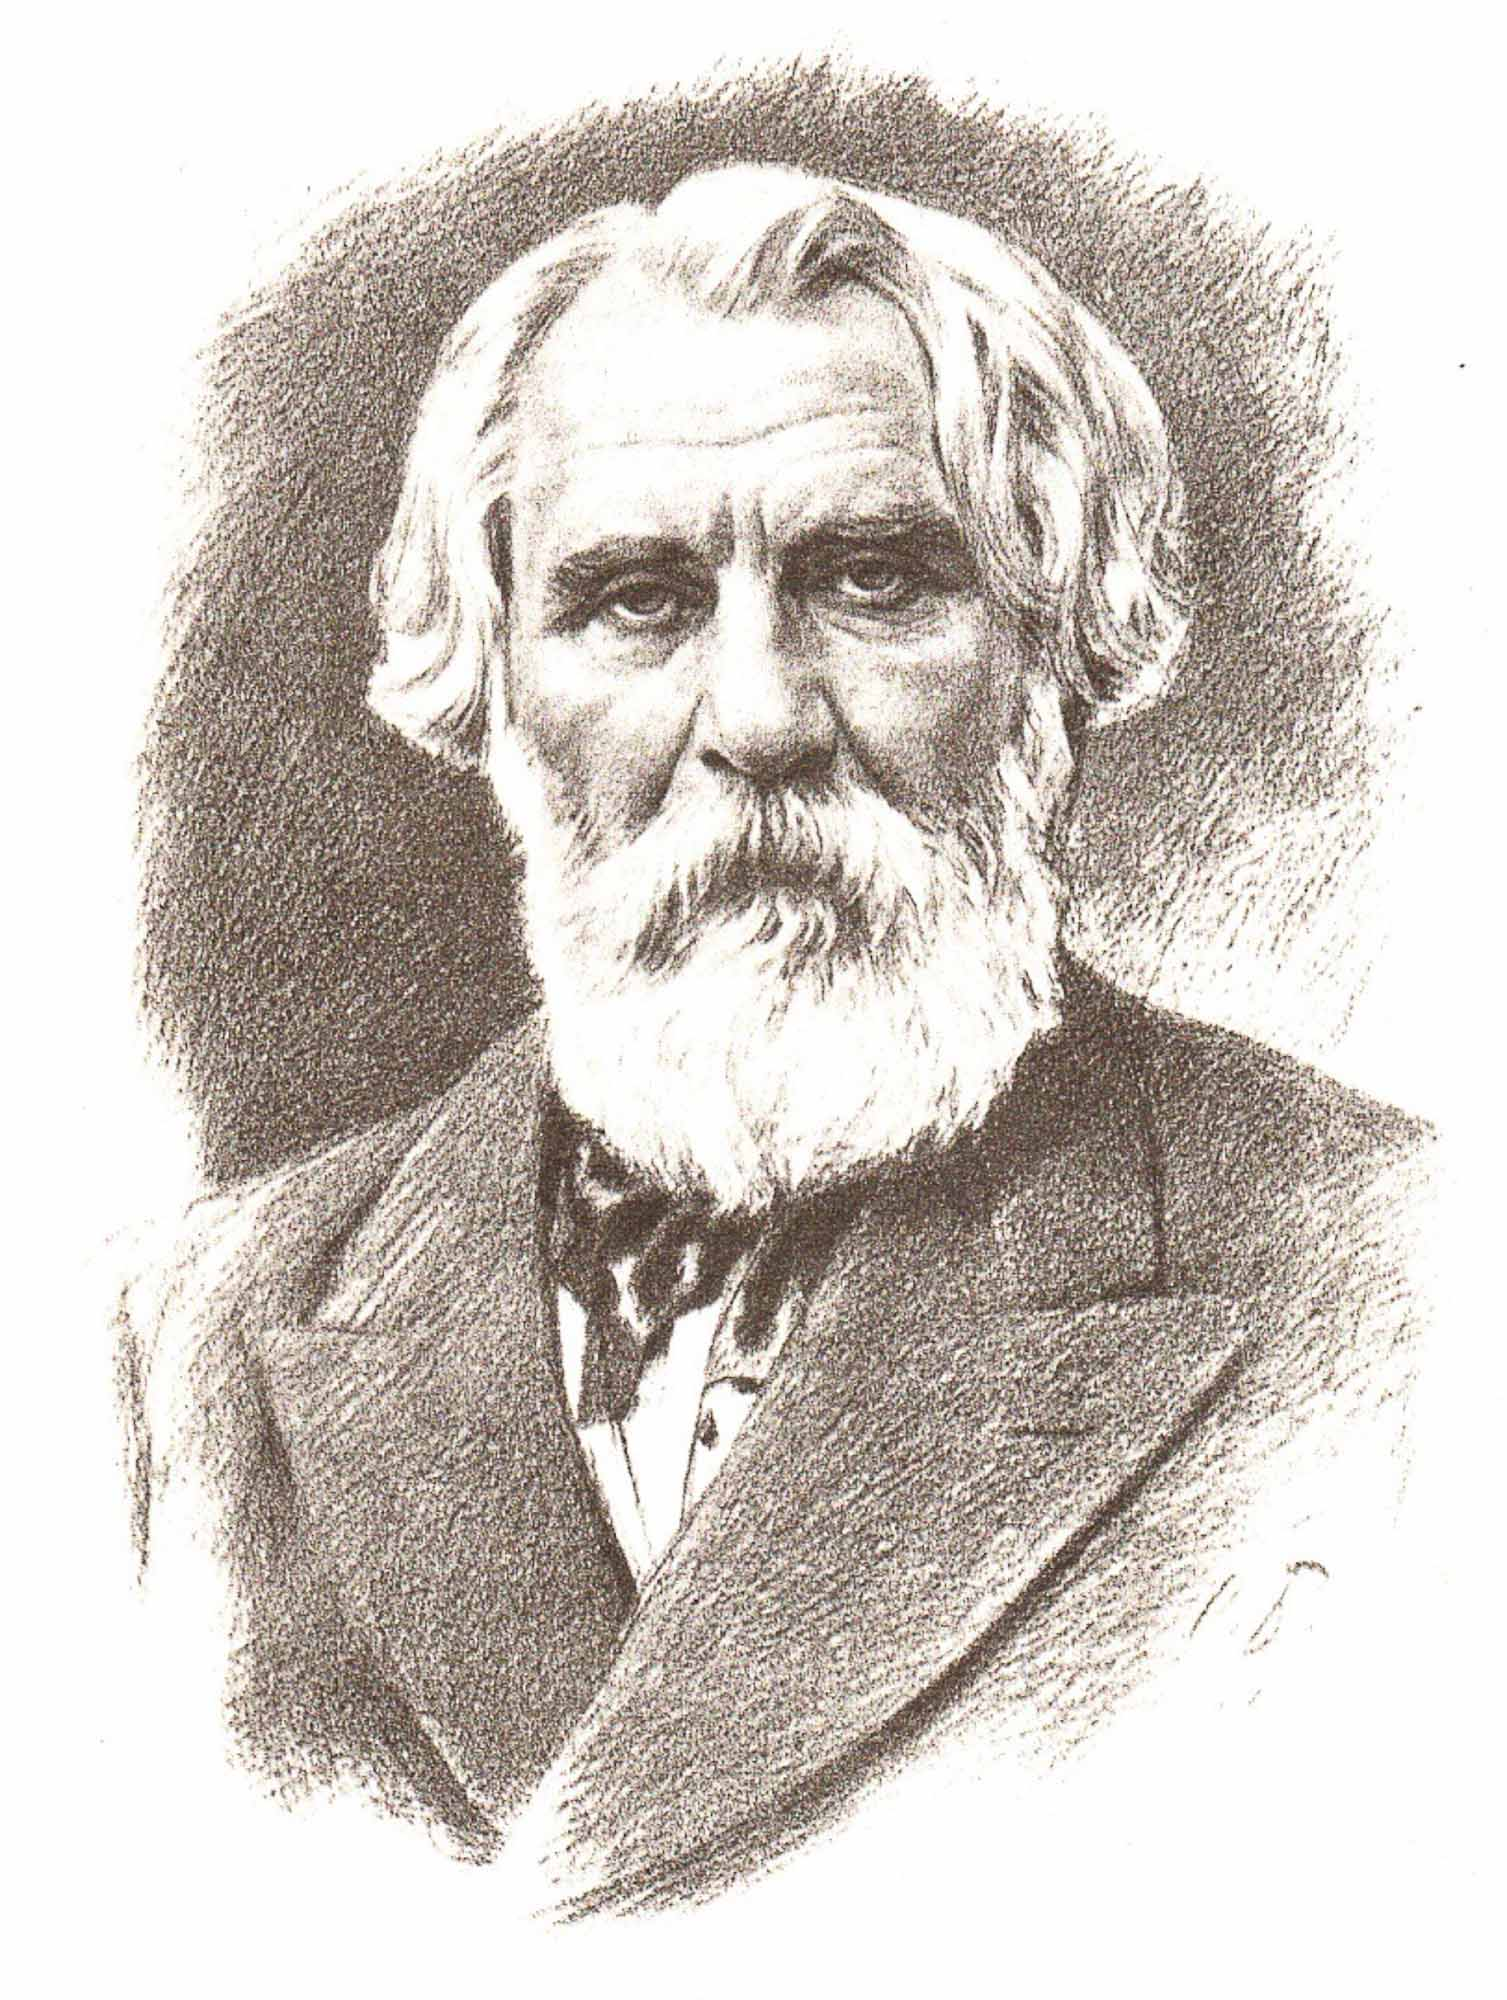 turgenev s short story bezhin meadow Essays - largest database of quality sample essays and research papers on turgenev s short story bezhin meadow.